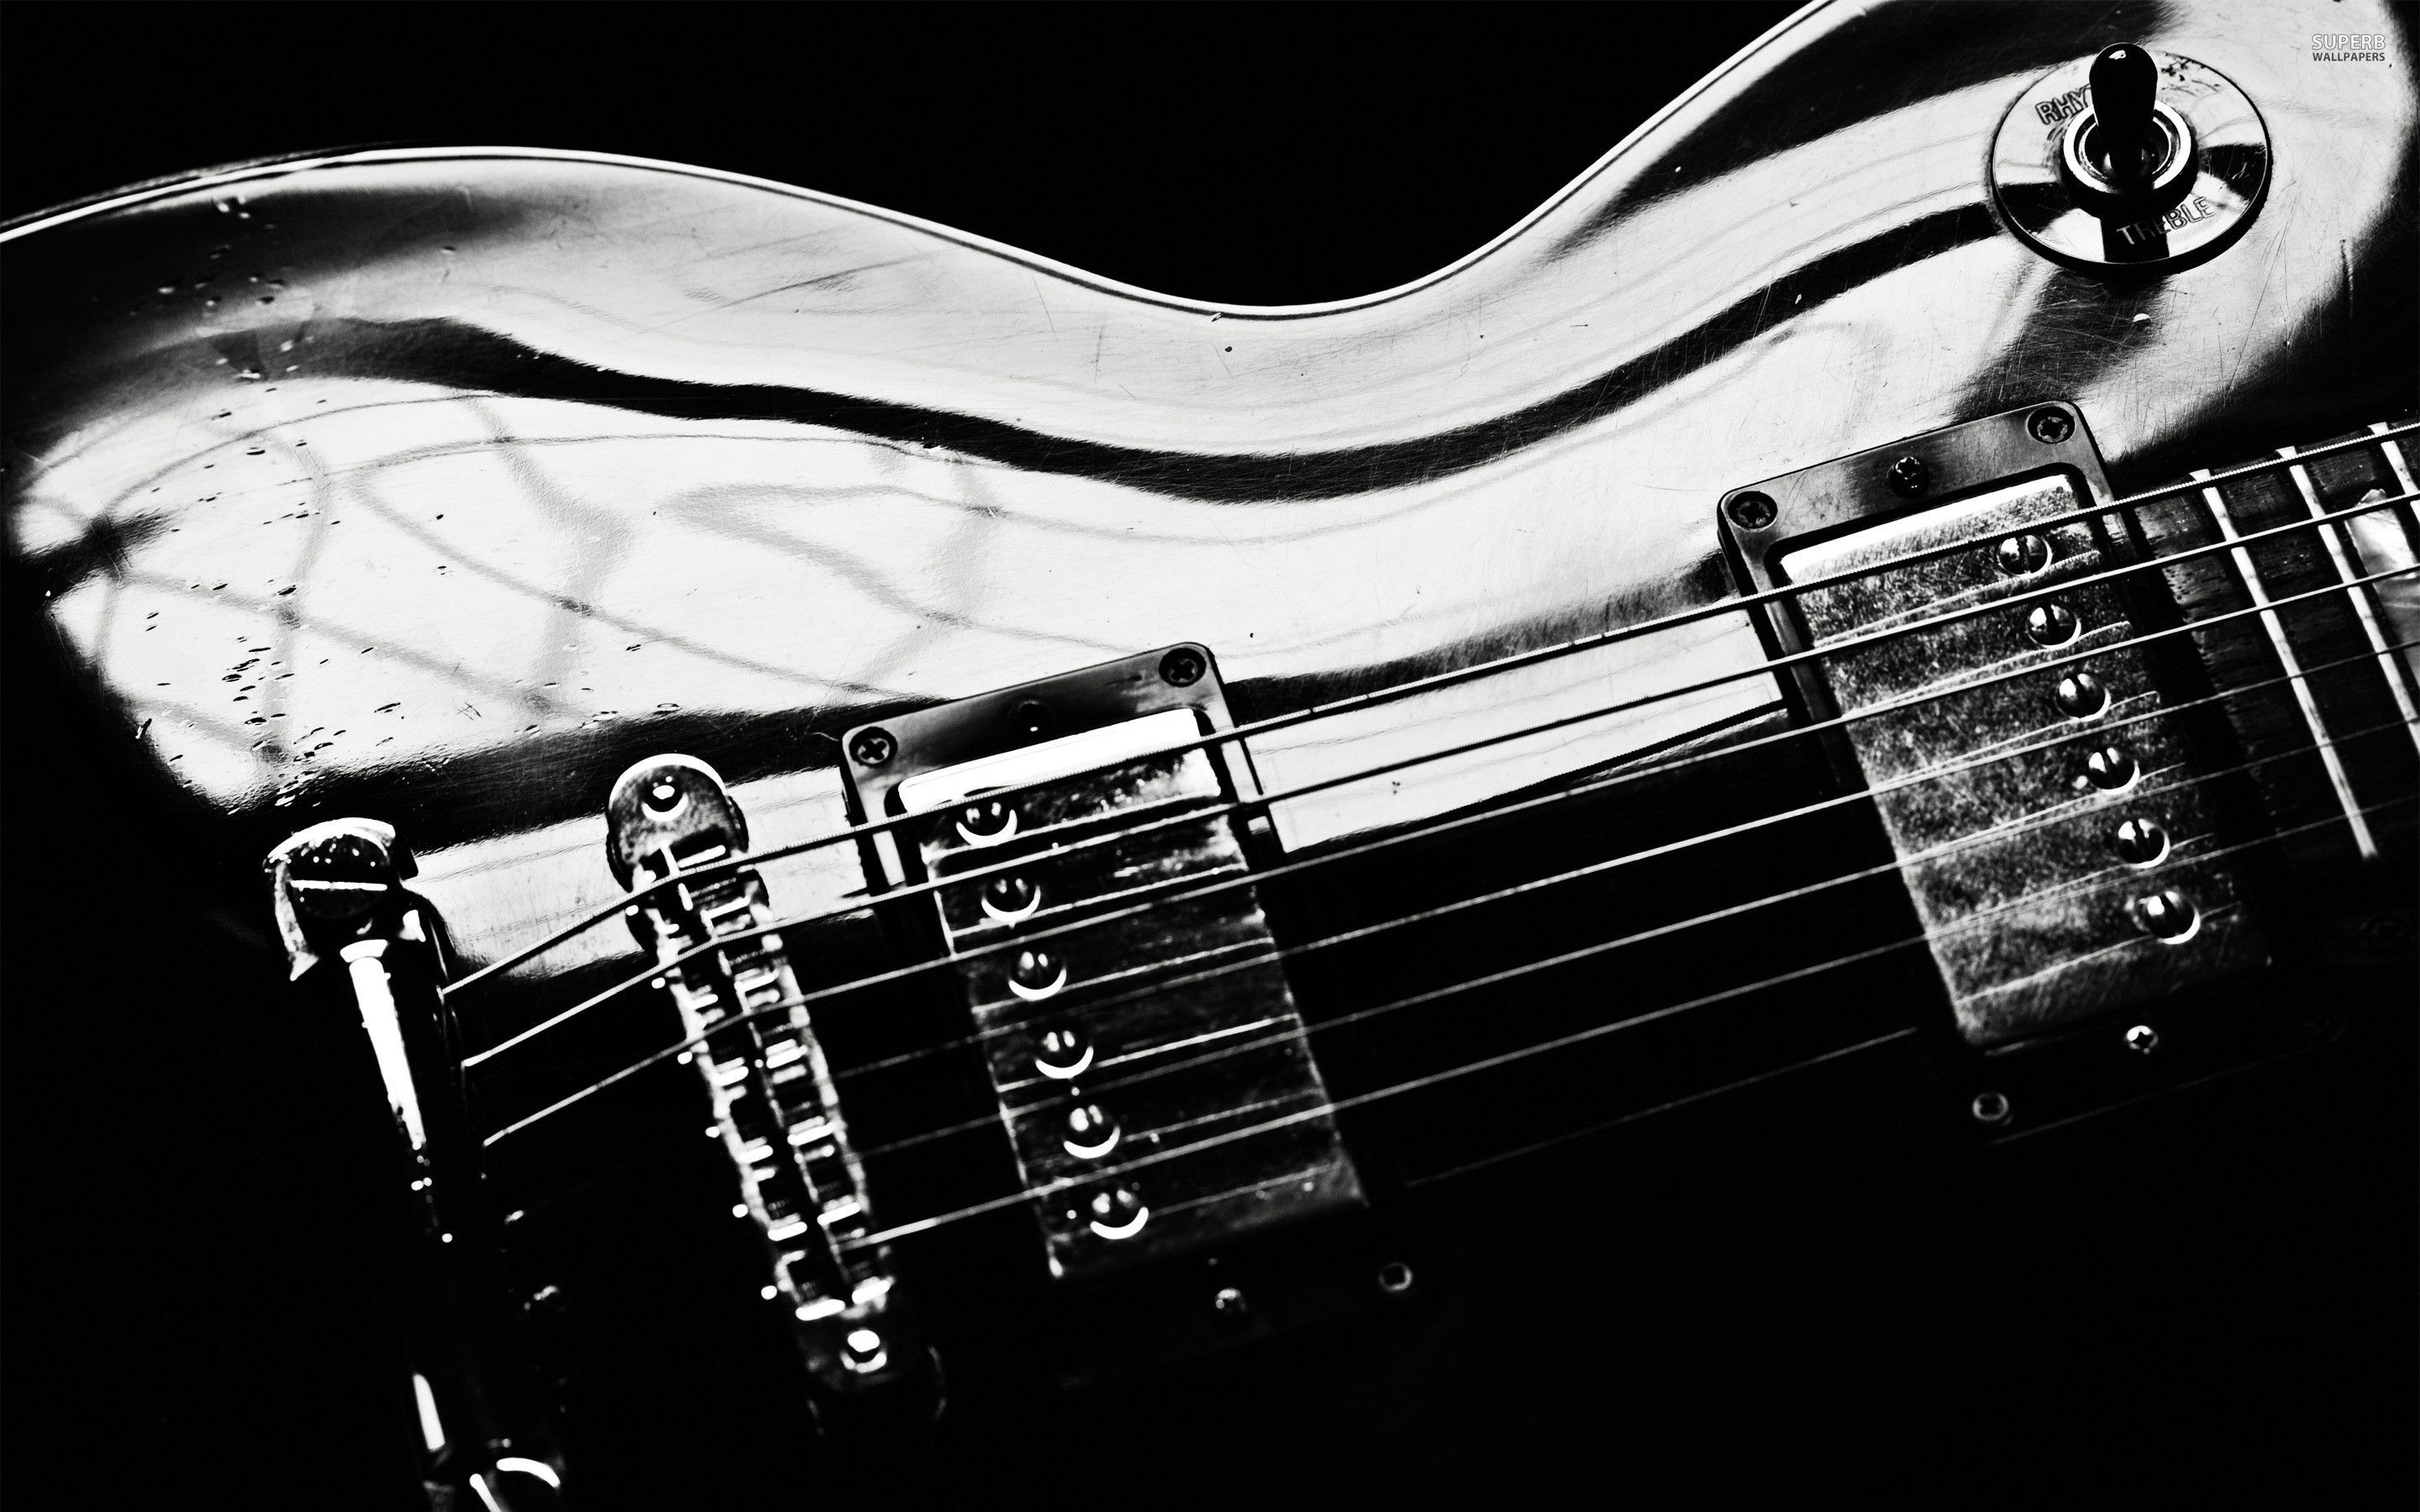 50 Gibson Guitar Wallpaper Hd Android Iphone Desktop Hd Backgrounds Wallpapers 1080p 4k 2880x1800 2020